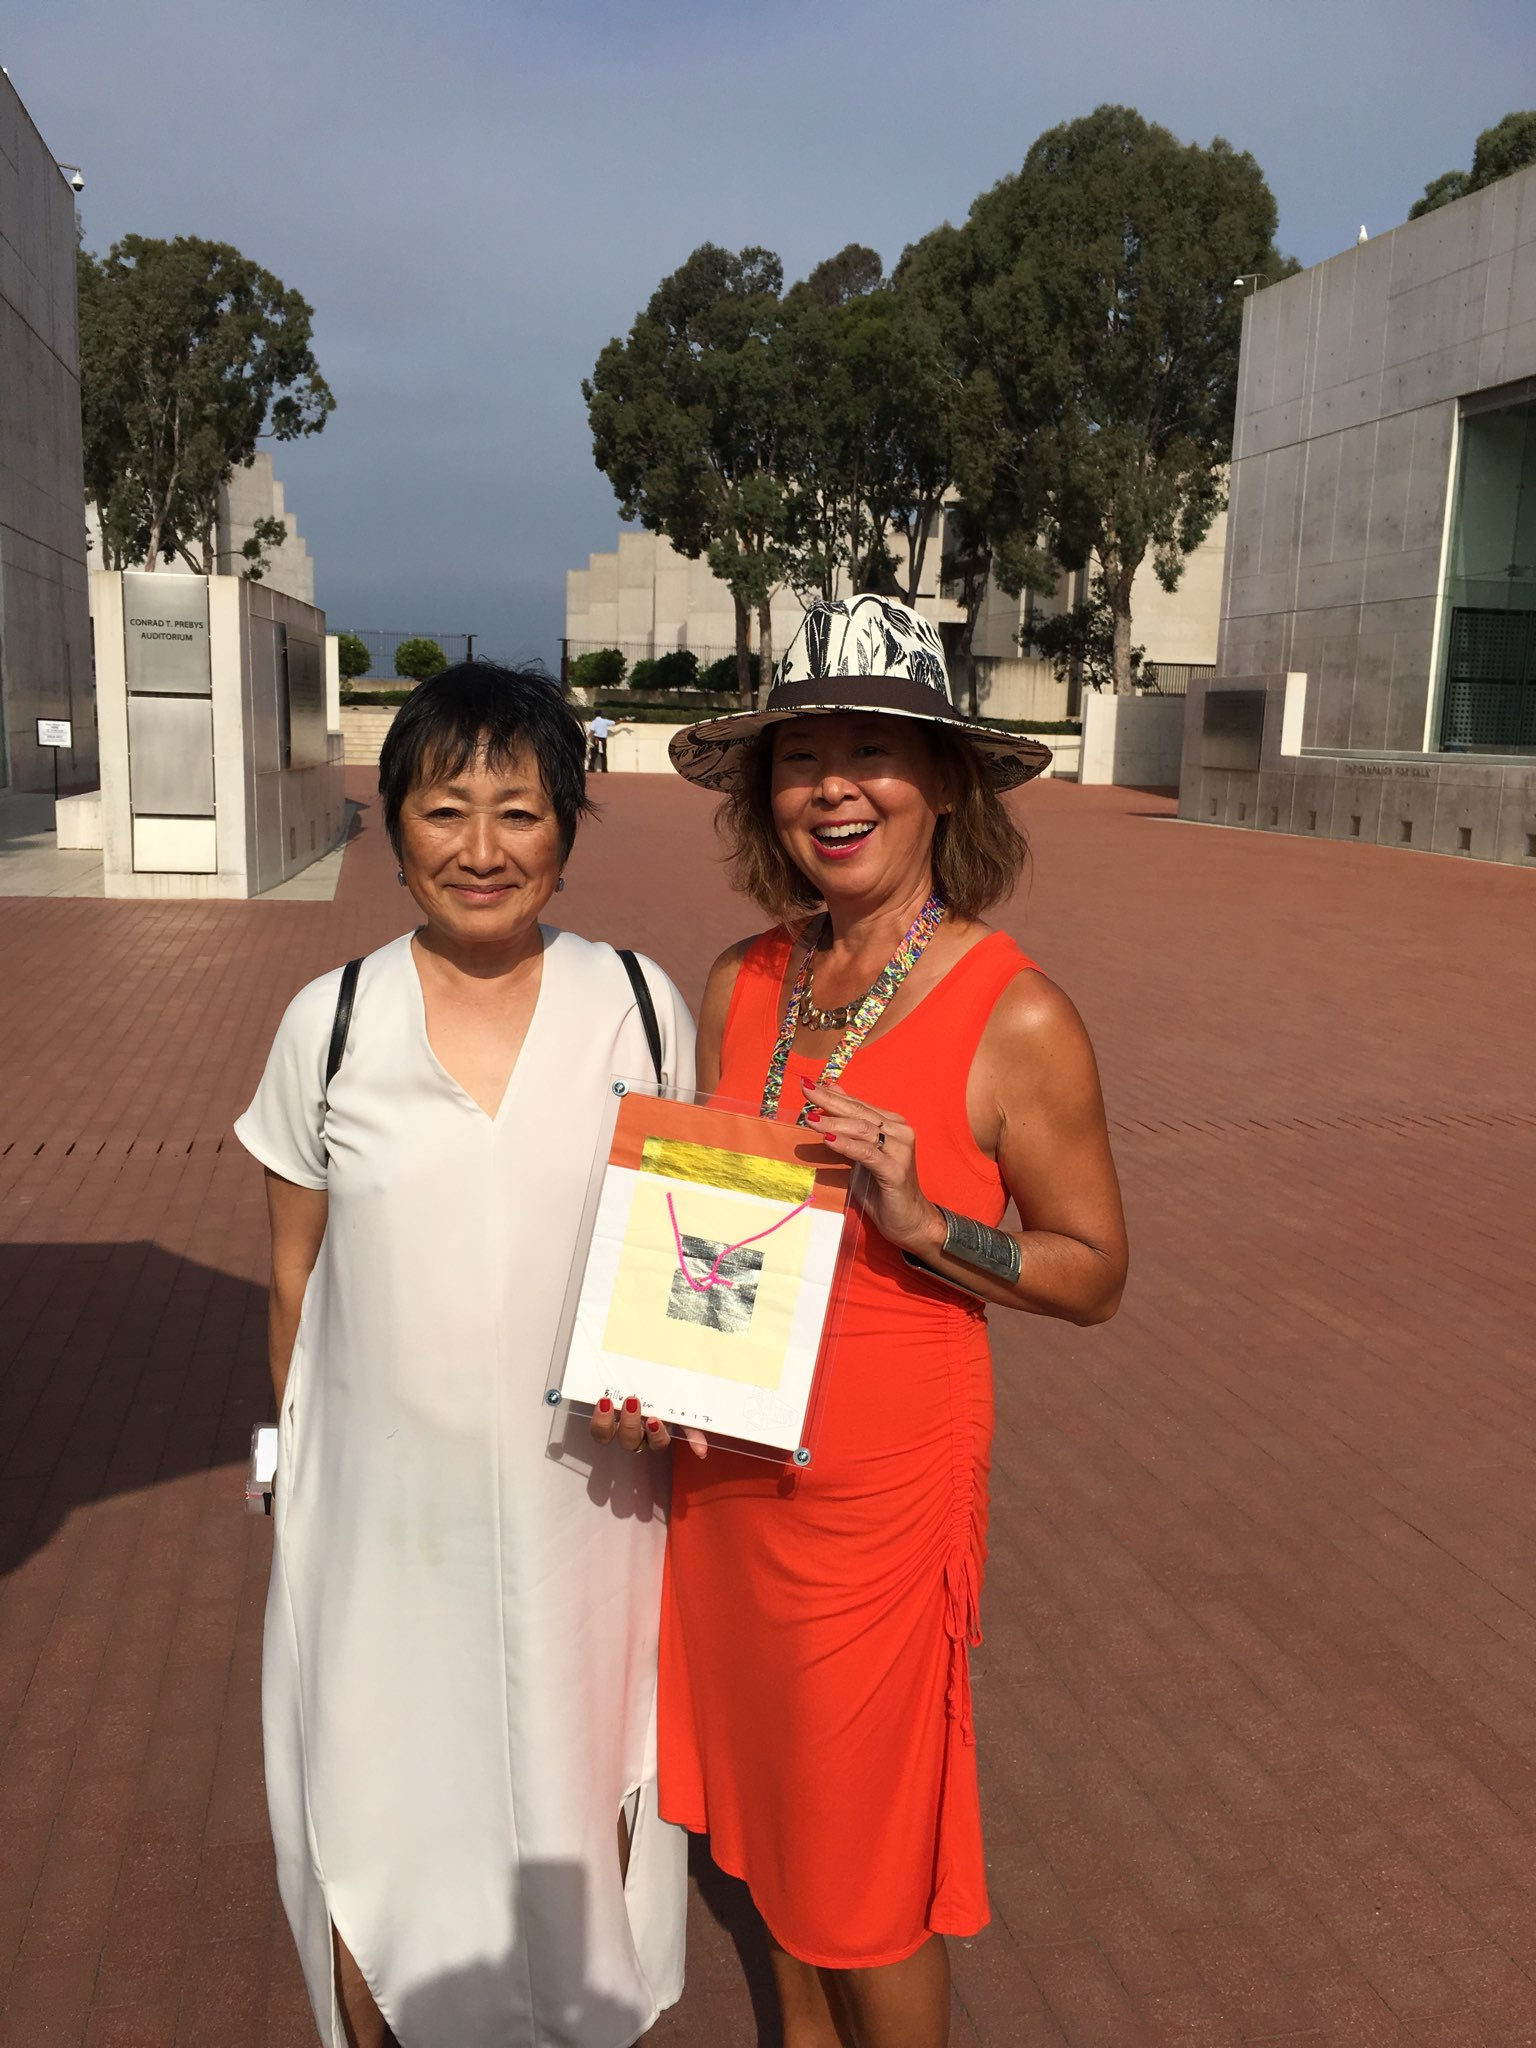 with Billie Tsien and the napkin sketch at Salk